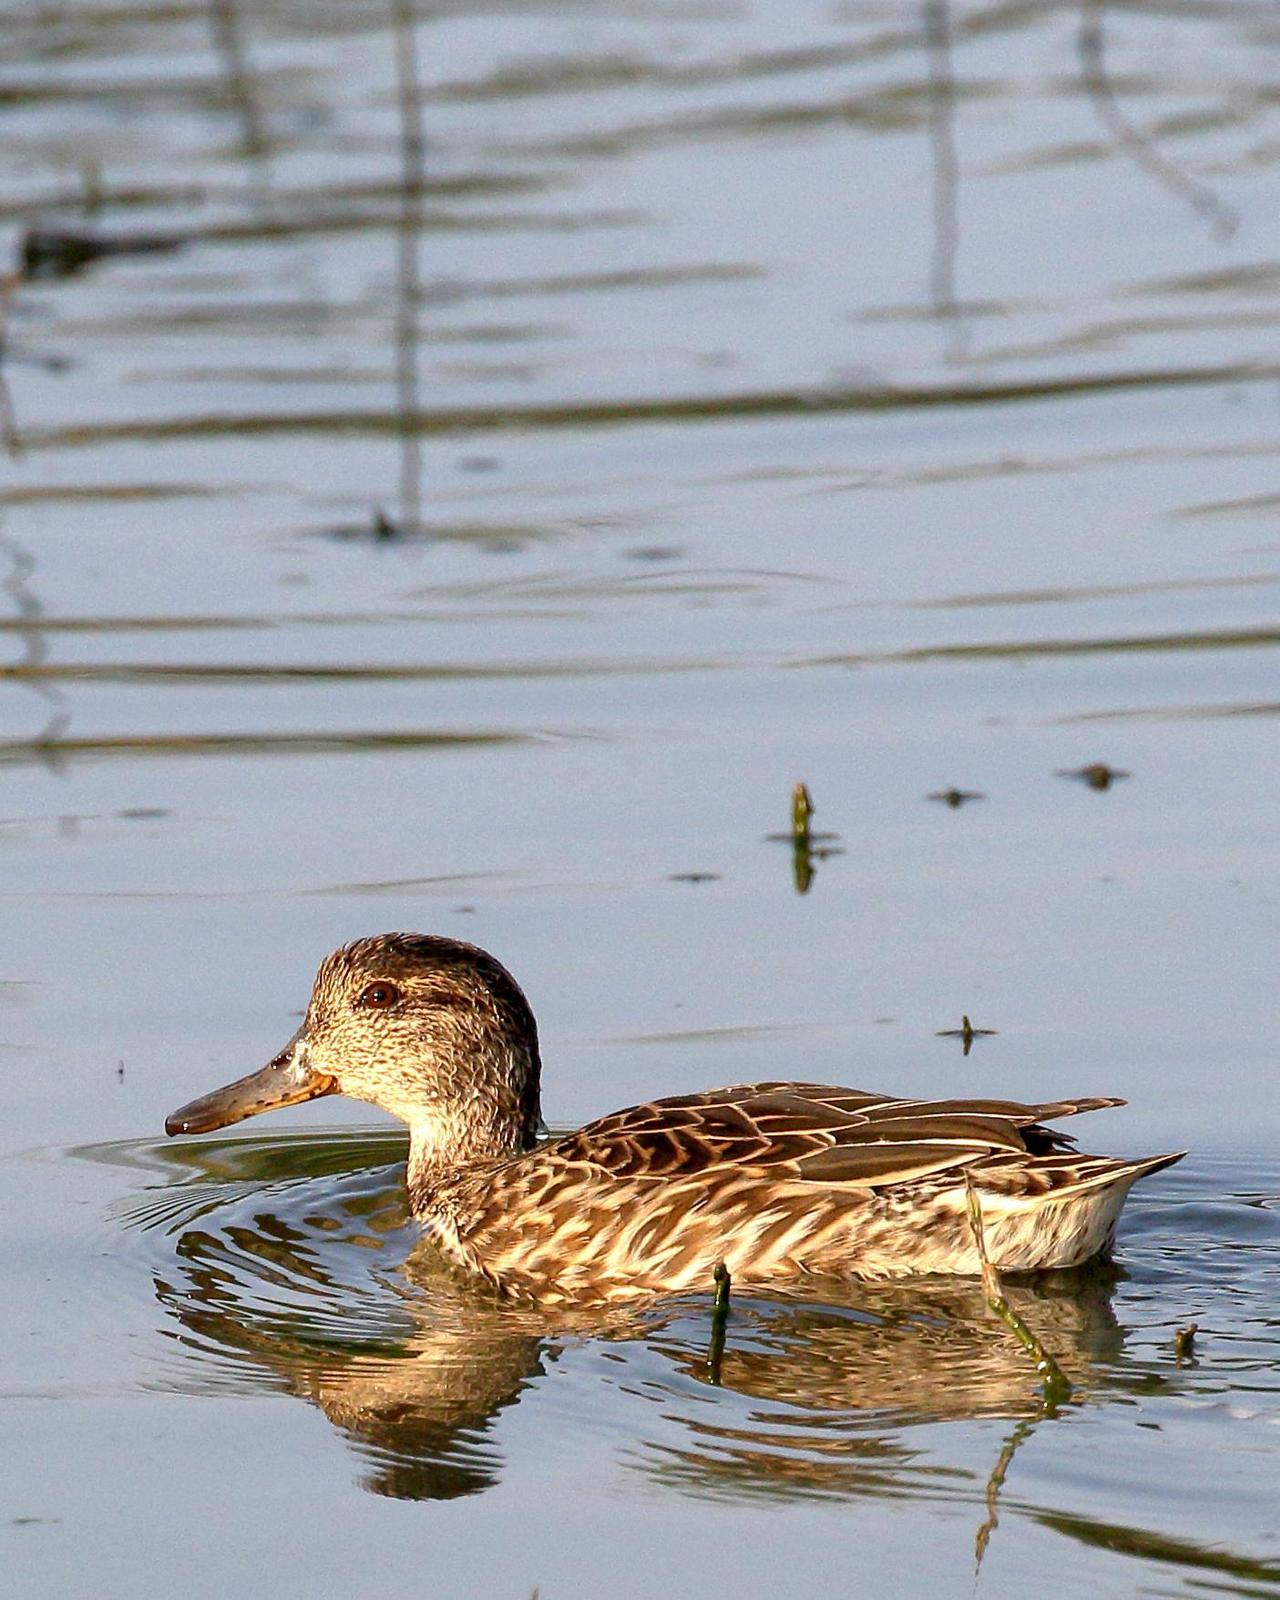 Green-winged Teal Photo by Rahul Kaushik